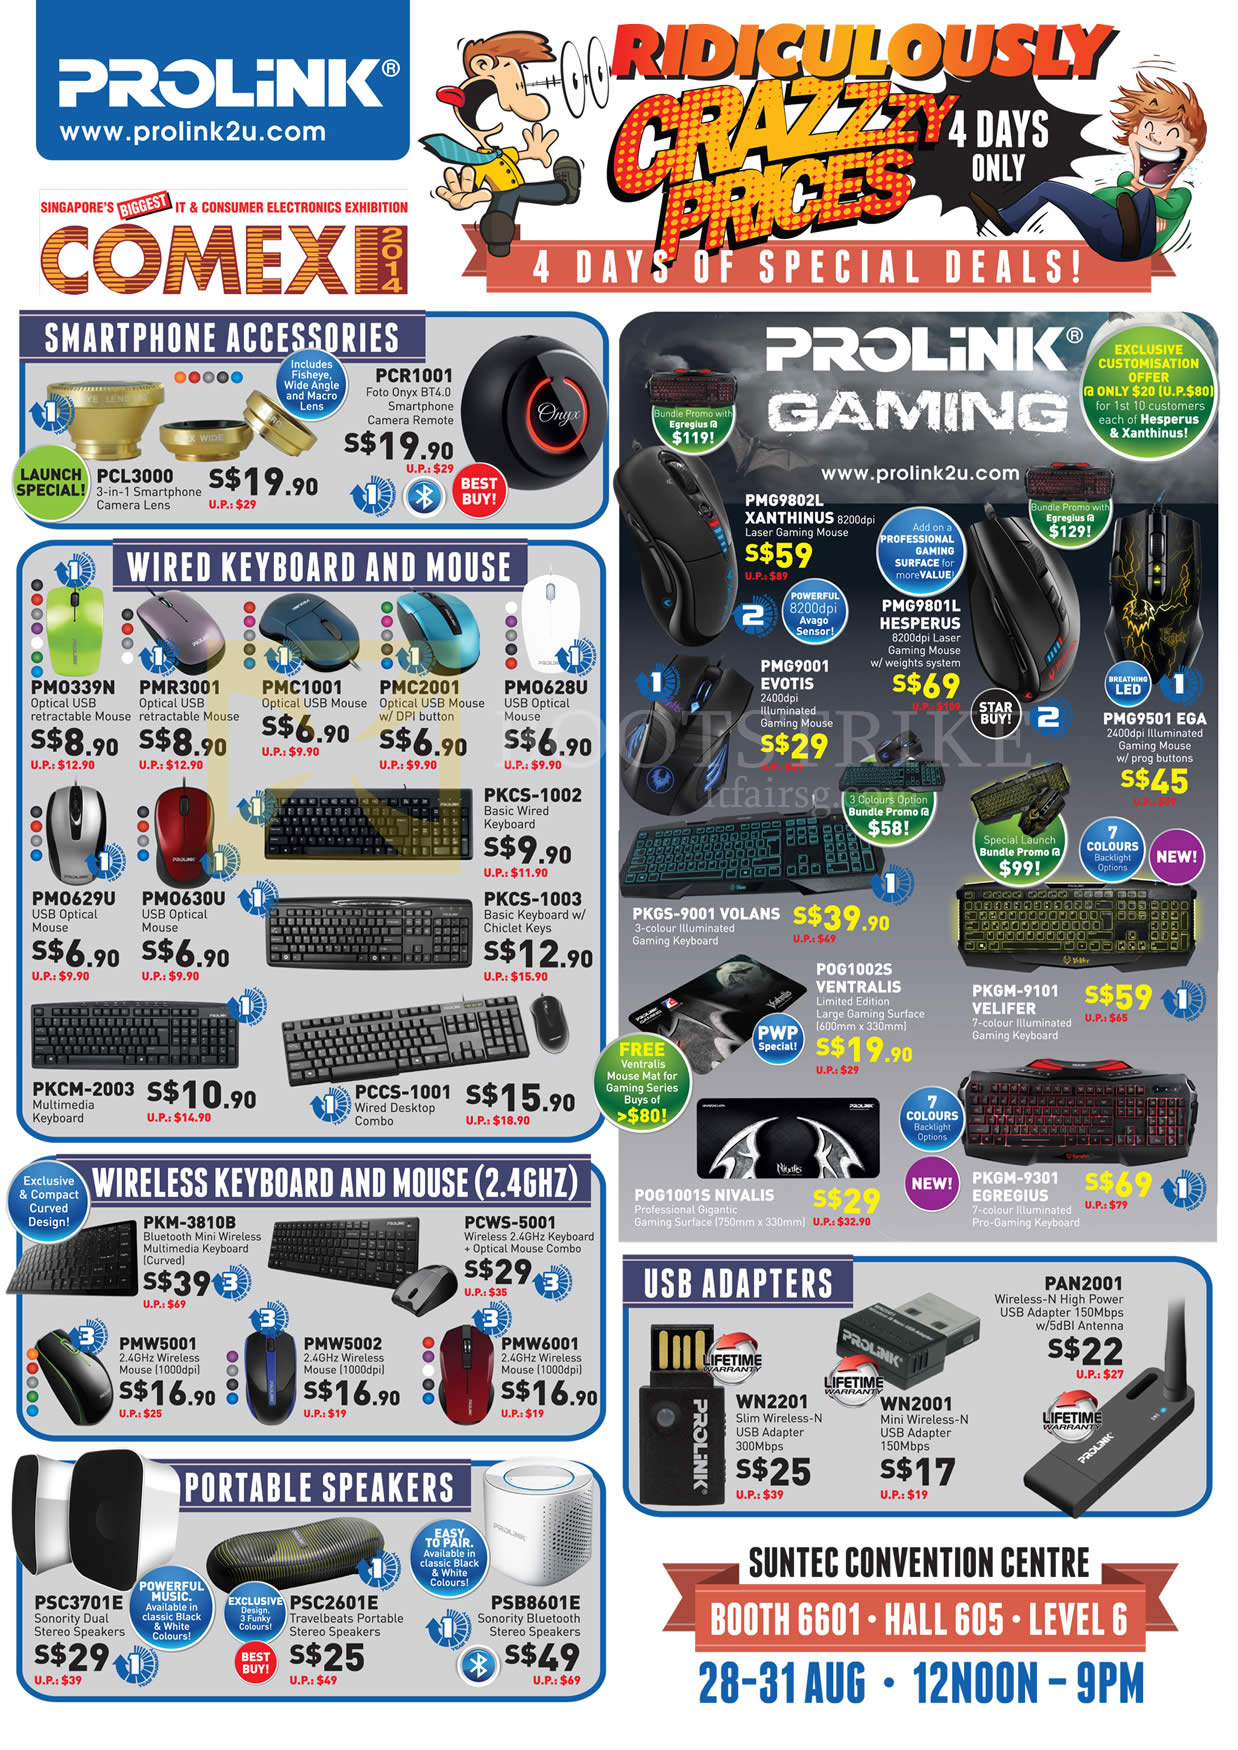 COMEX 2014 price list image brochure of Prolink Smartphone Accessories, Keyboard, Wired Gaming Mouse, Speakers, Wireless USB Adapters